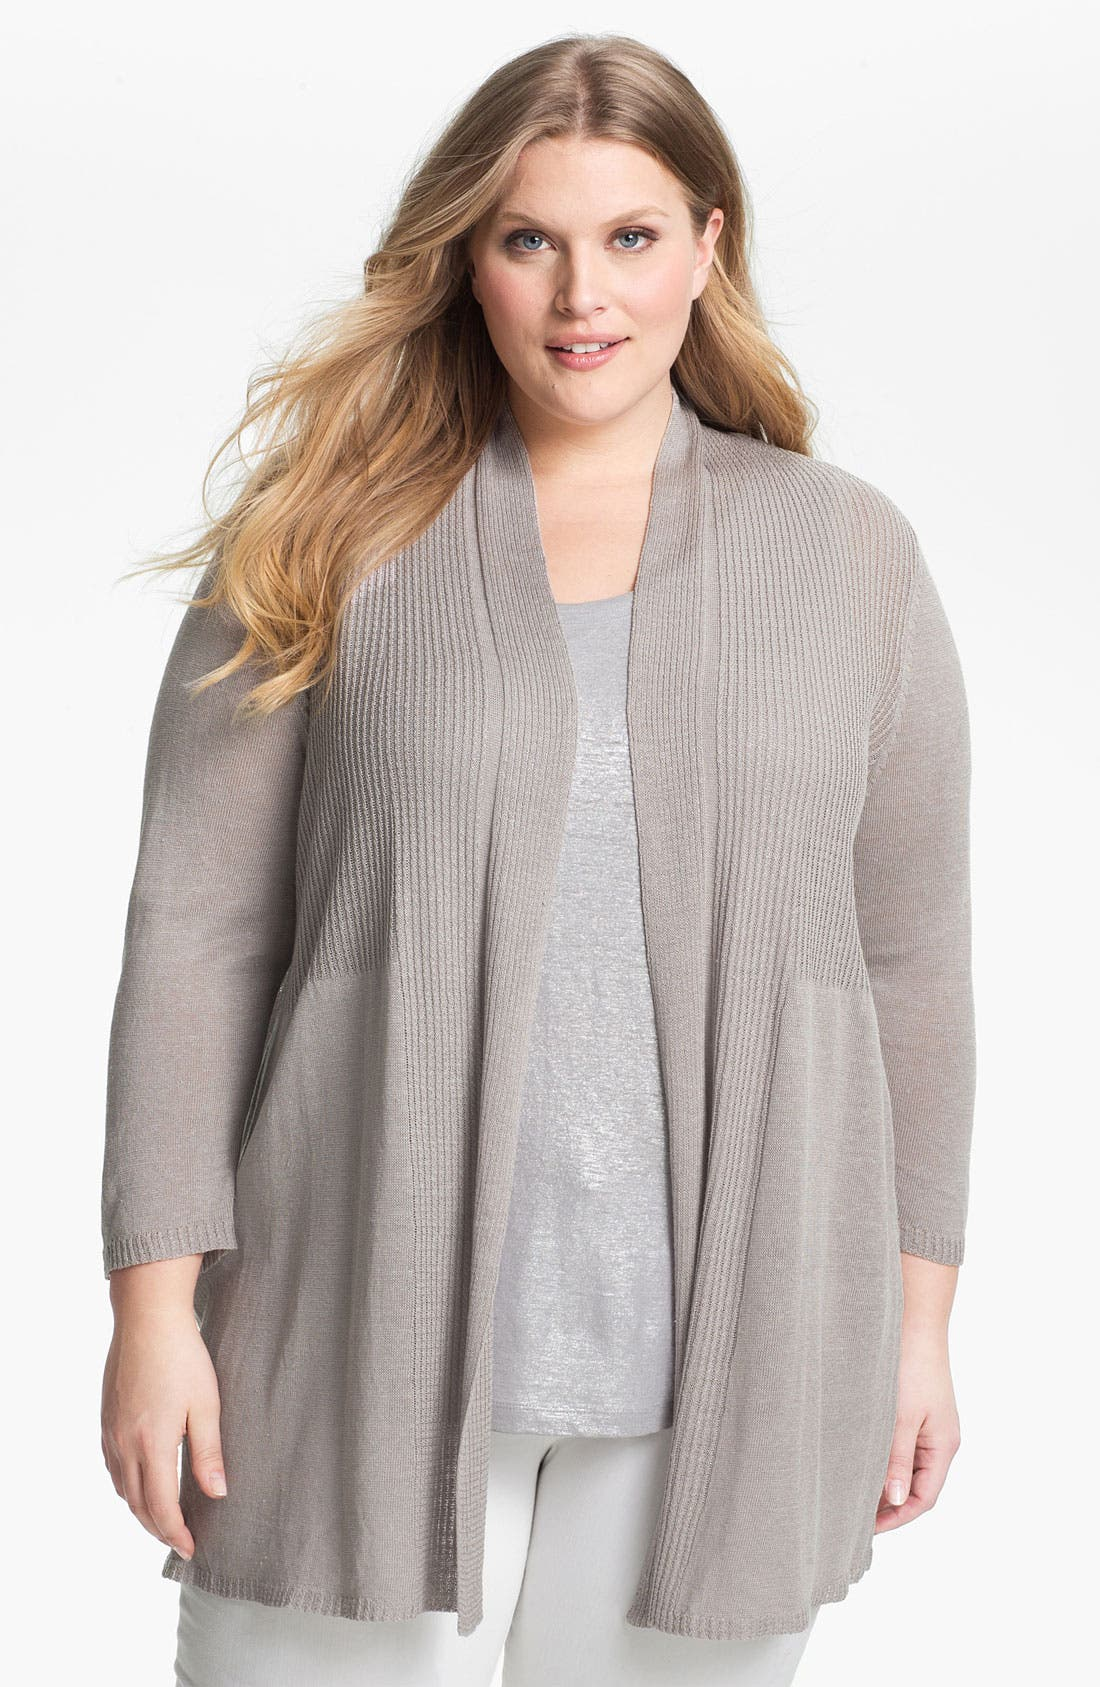 Alternate Image 1 Selected - Nic + Zoe Ribbed Cardigan (Plus Size)